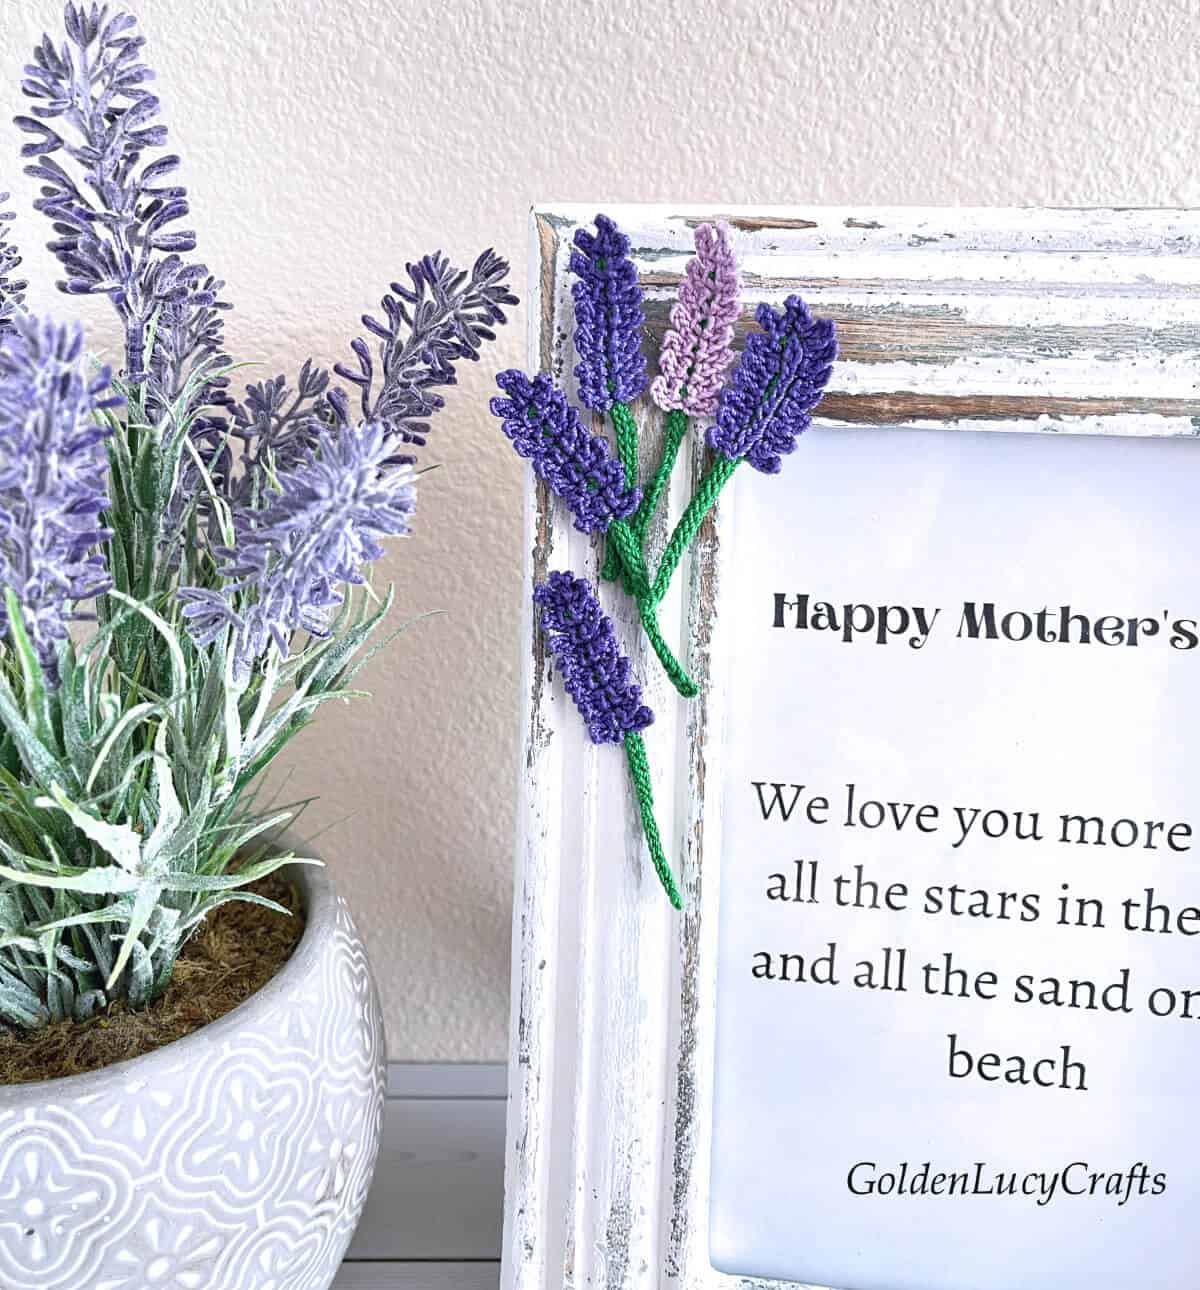 Mother's Day picture frame embellished with crochet lavender flowers, lavender in a pot next to it, close up picture.